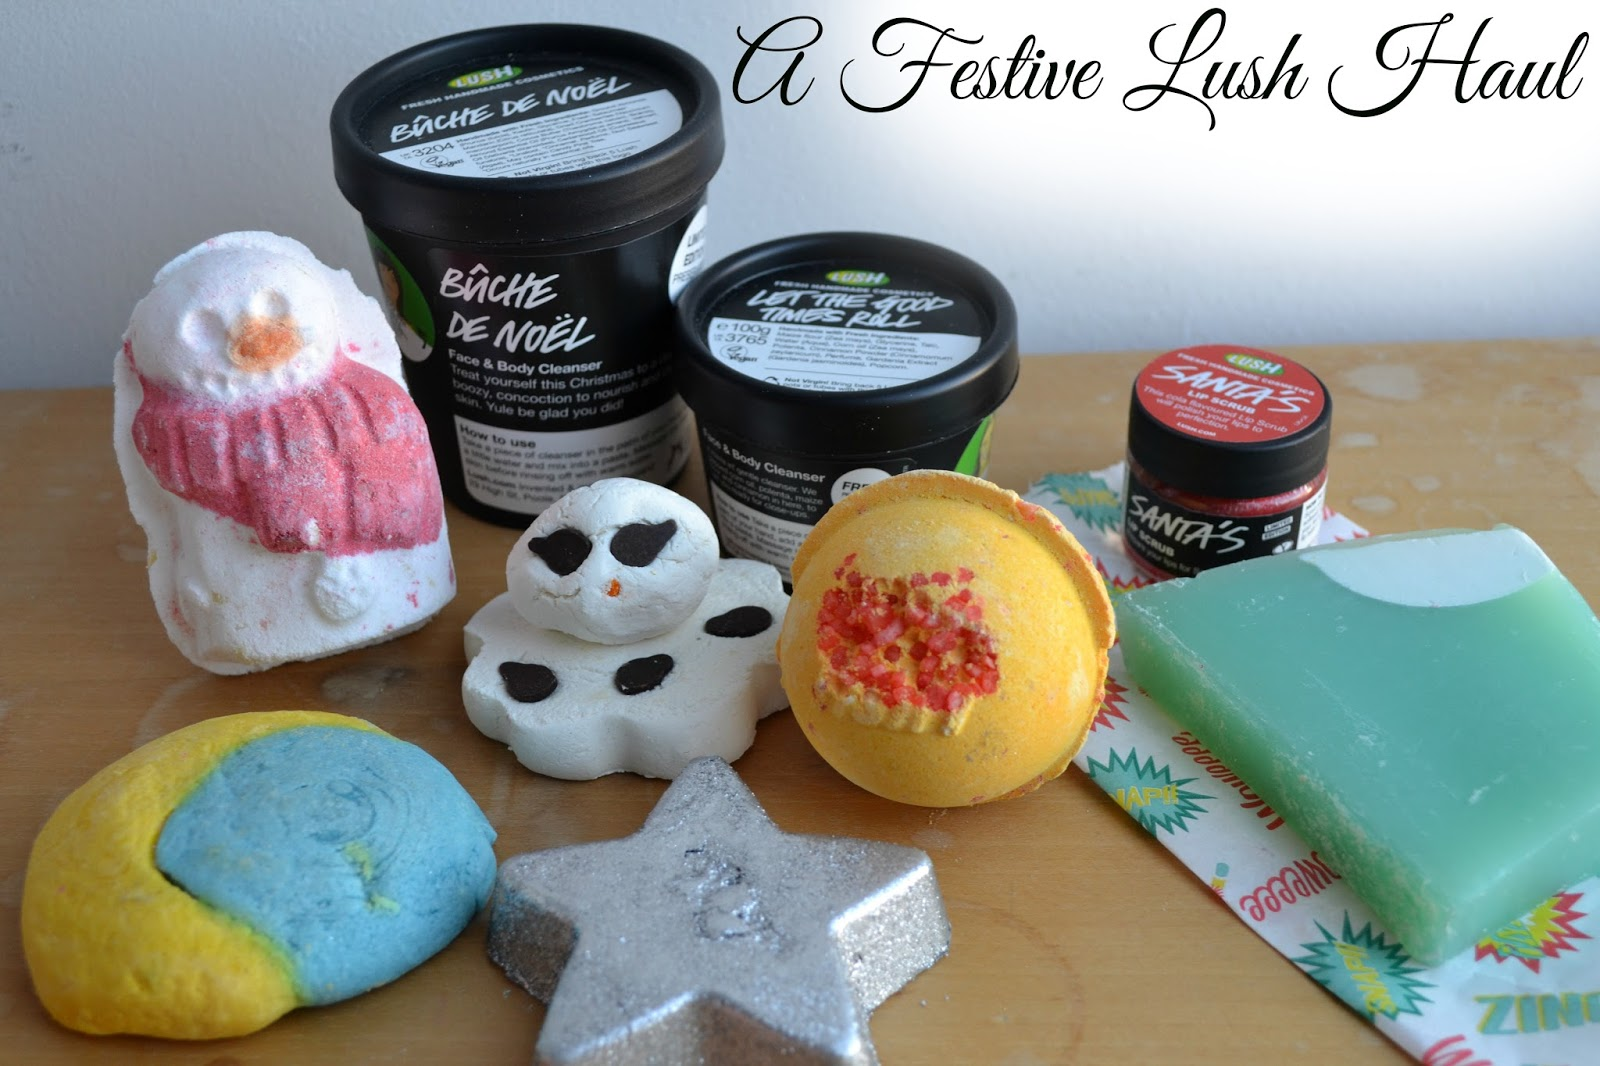 A group of lush products from the 2013 christmas collection